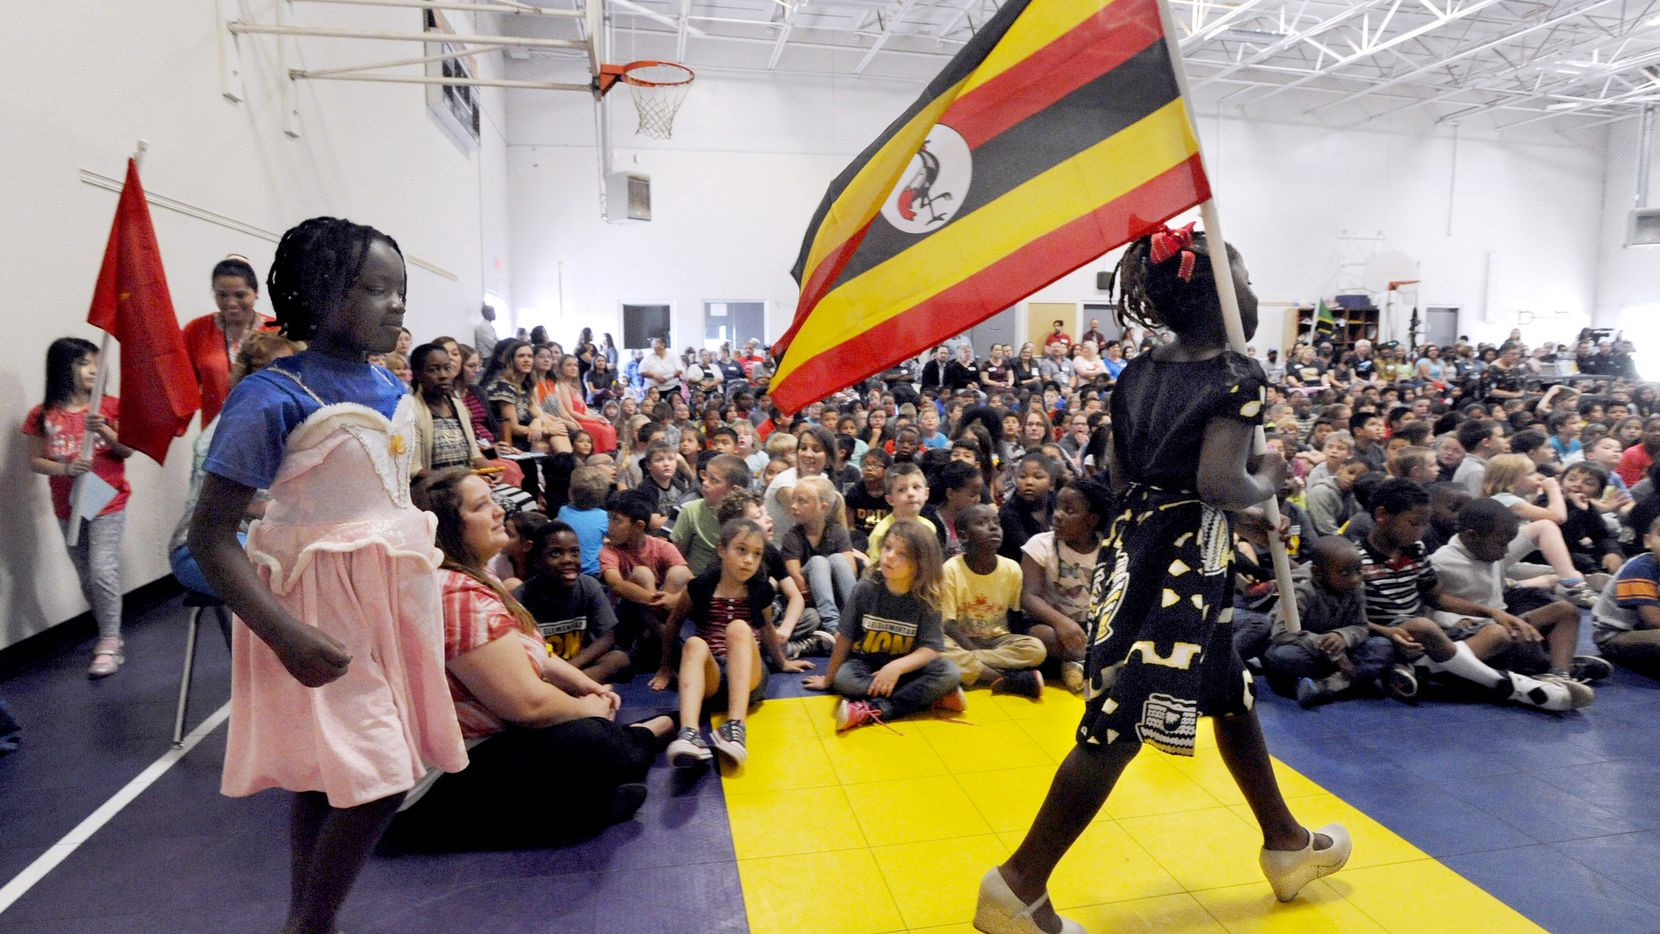 Third-grader Winner Moligi carries the flag of Uganda during a special assembly celebrating the international diversity at Lee Elementary School in Abilene, Texas., Thursday, May 18, 2017. Students from 19 countries carried the flags of the nations from which their families came during the event. The school is the designated entry-point for immigrant families in the Abilene Independent School District. (Ronald W. Erdrich/The Abilene Reporter-News via AP)